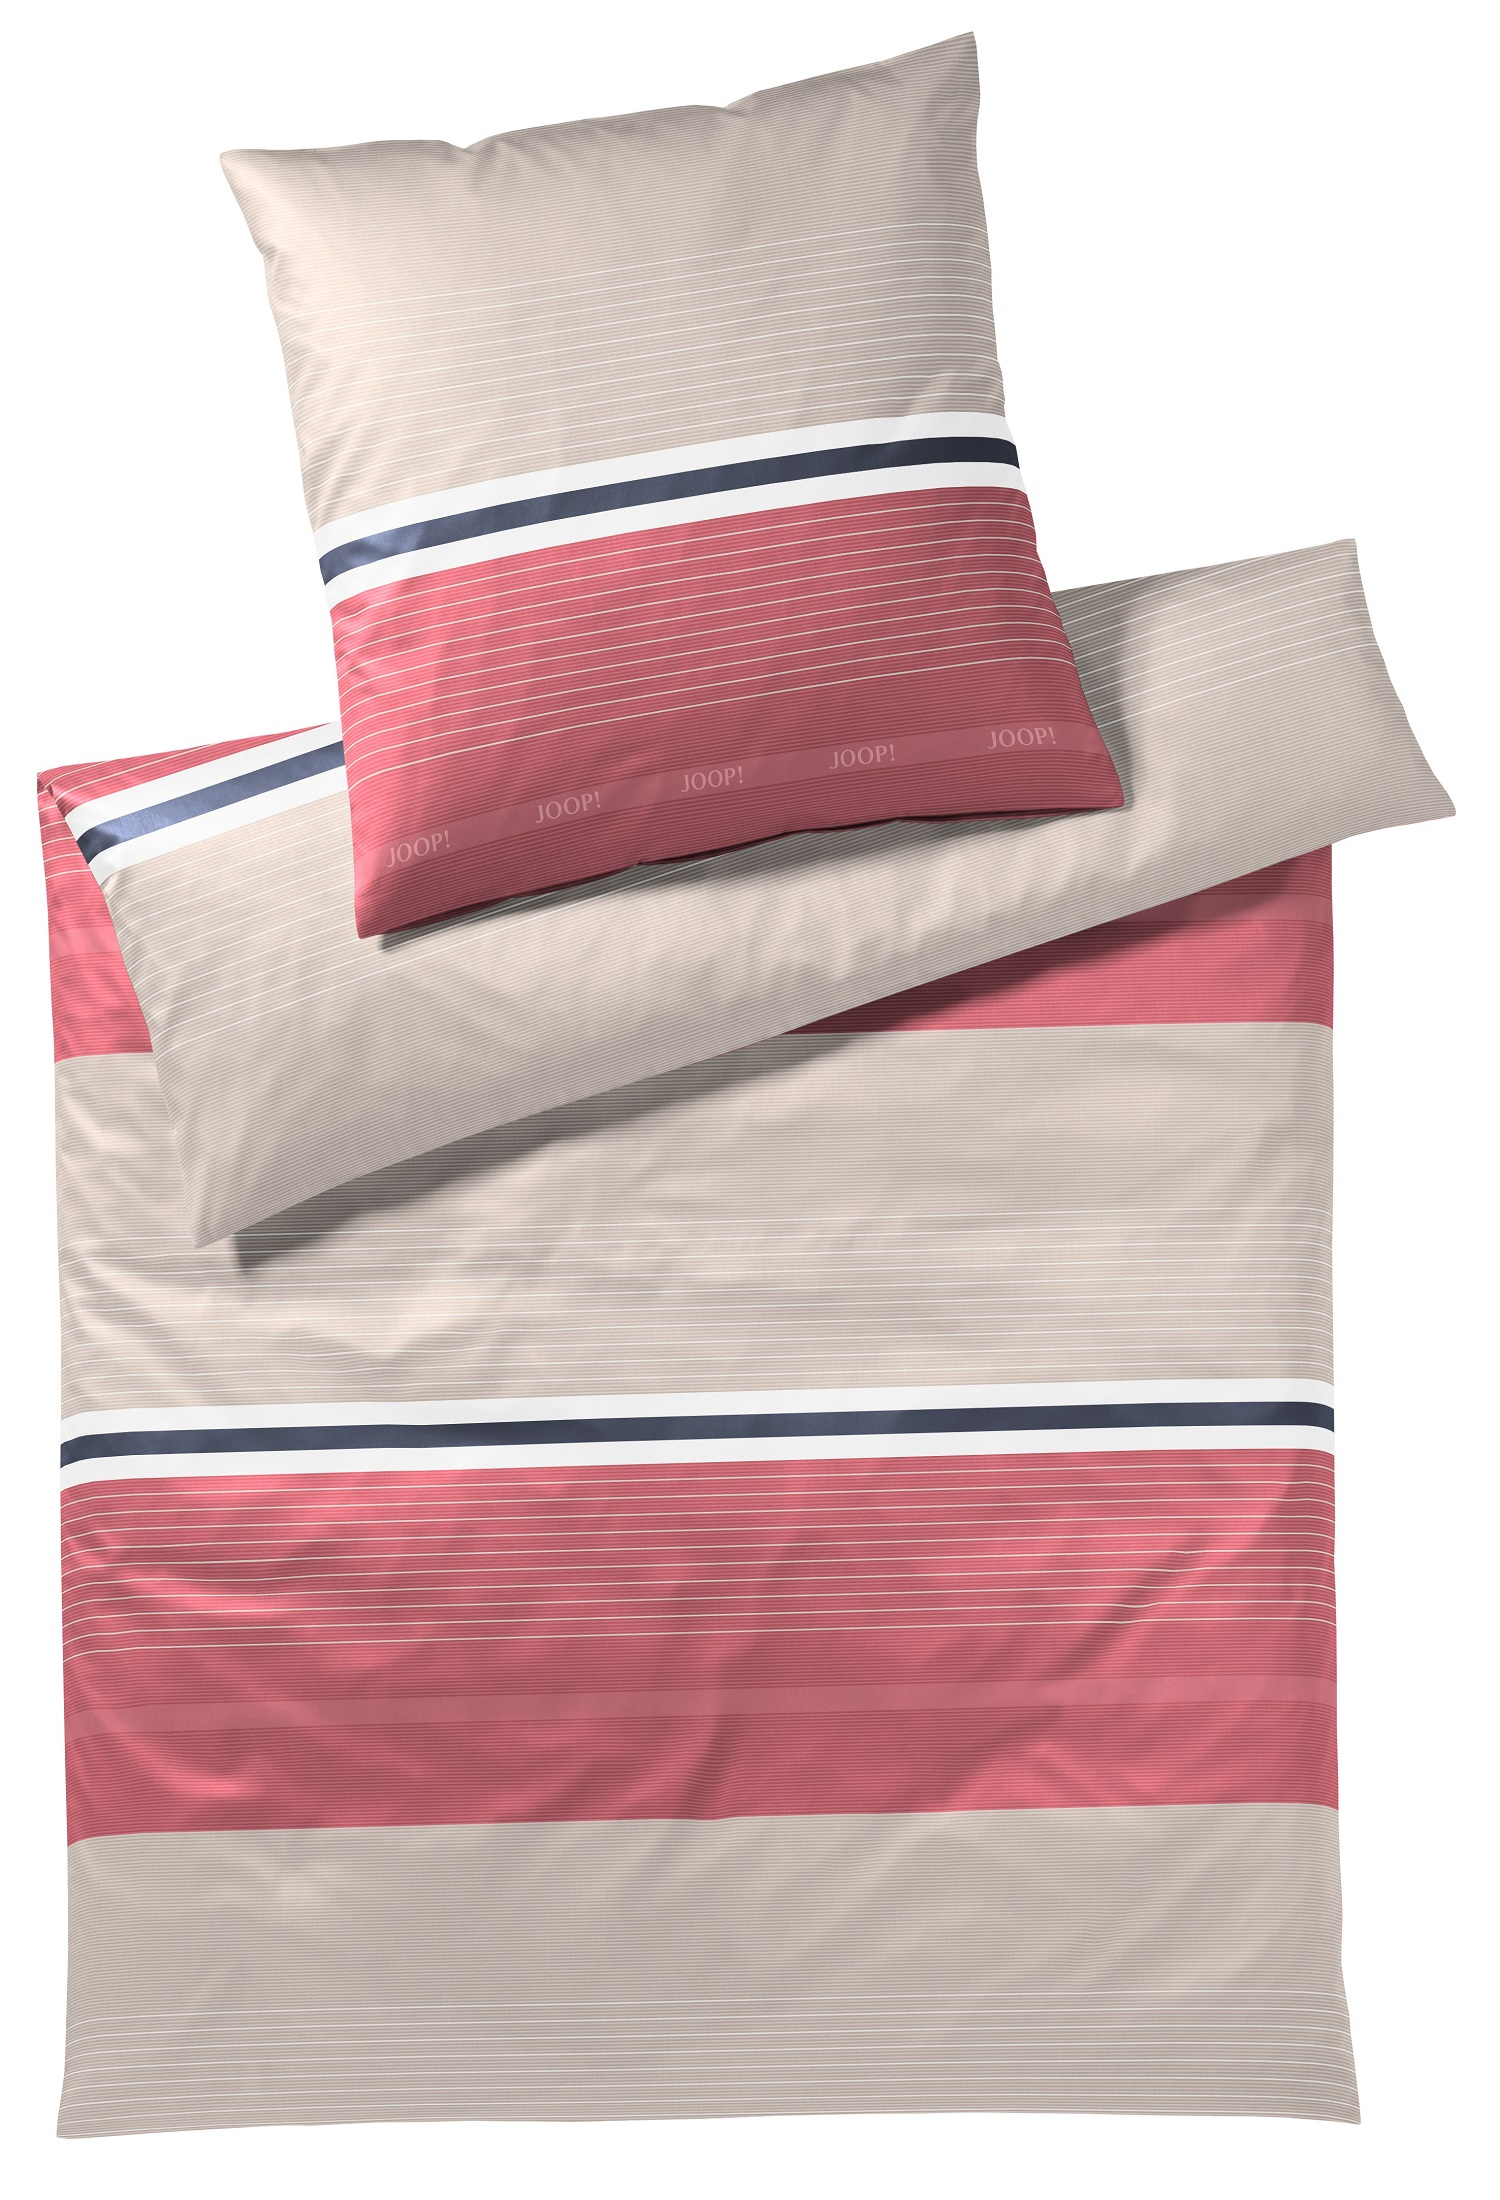 JOOP! Bettwäsche Fit 4091-01 Coral 155x220 cm Kollektion 2020